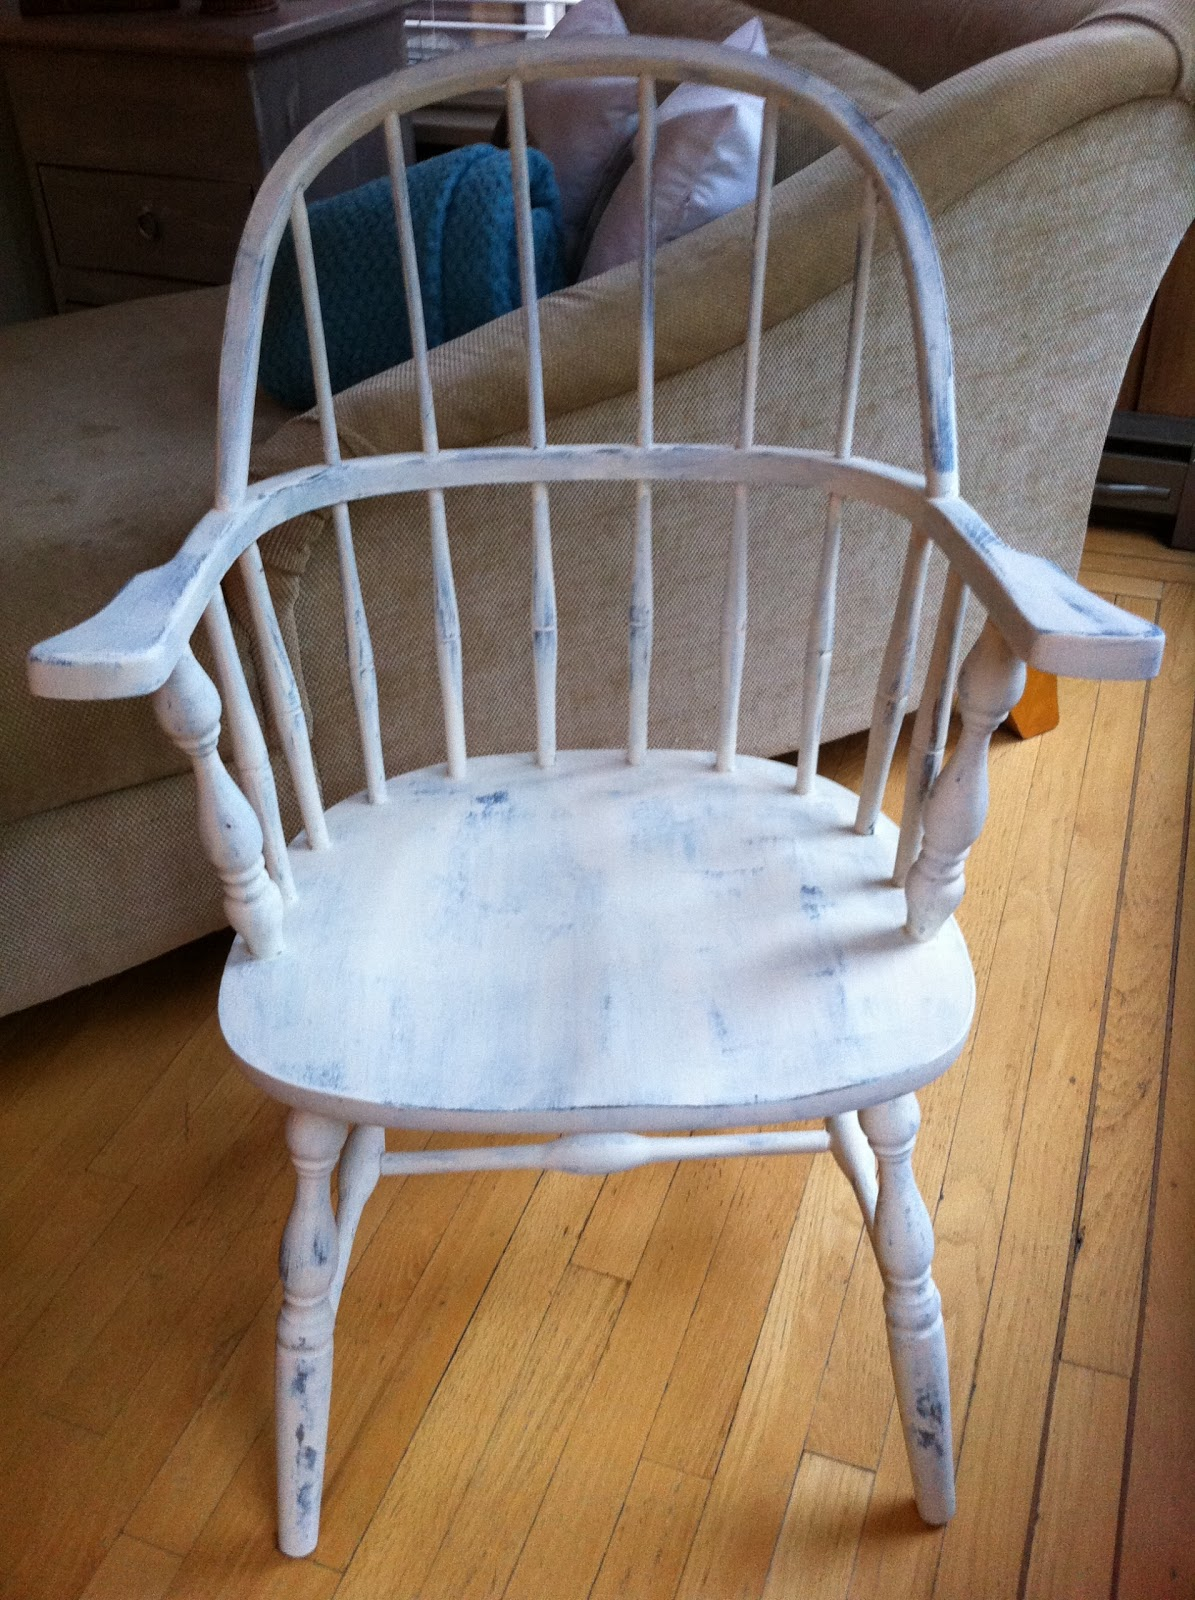 CondensedLoveHome: Painted Chairs!